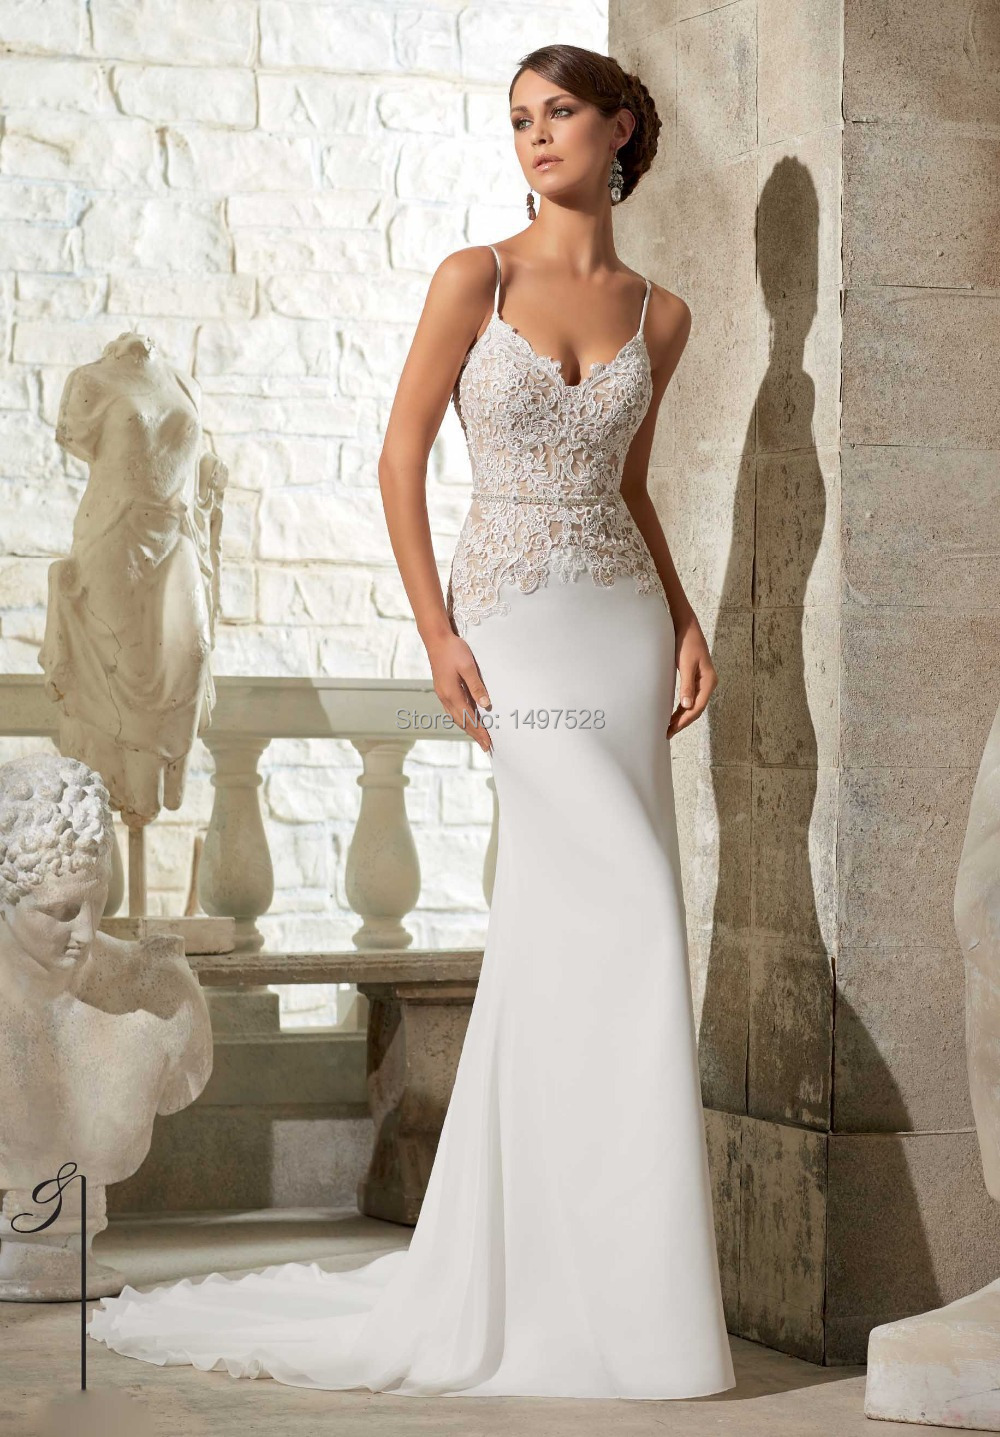 Deep Low Back Wedding Dress : Amazing deep v neck spaghetti straps low back lace